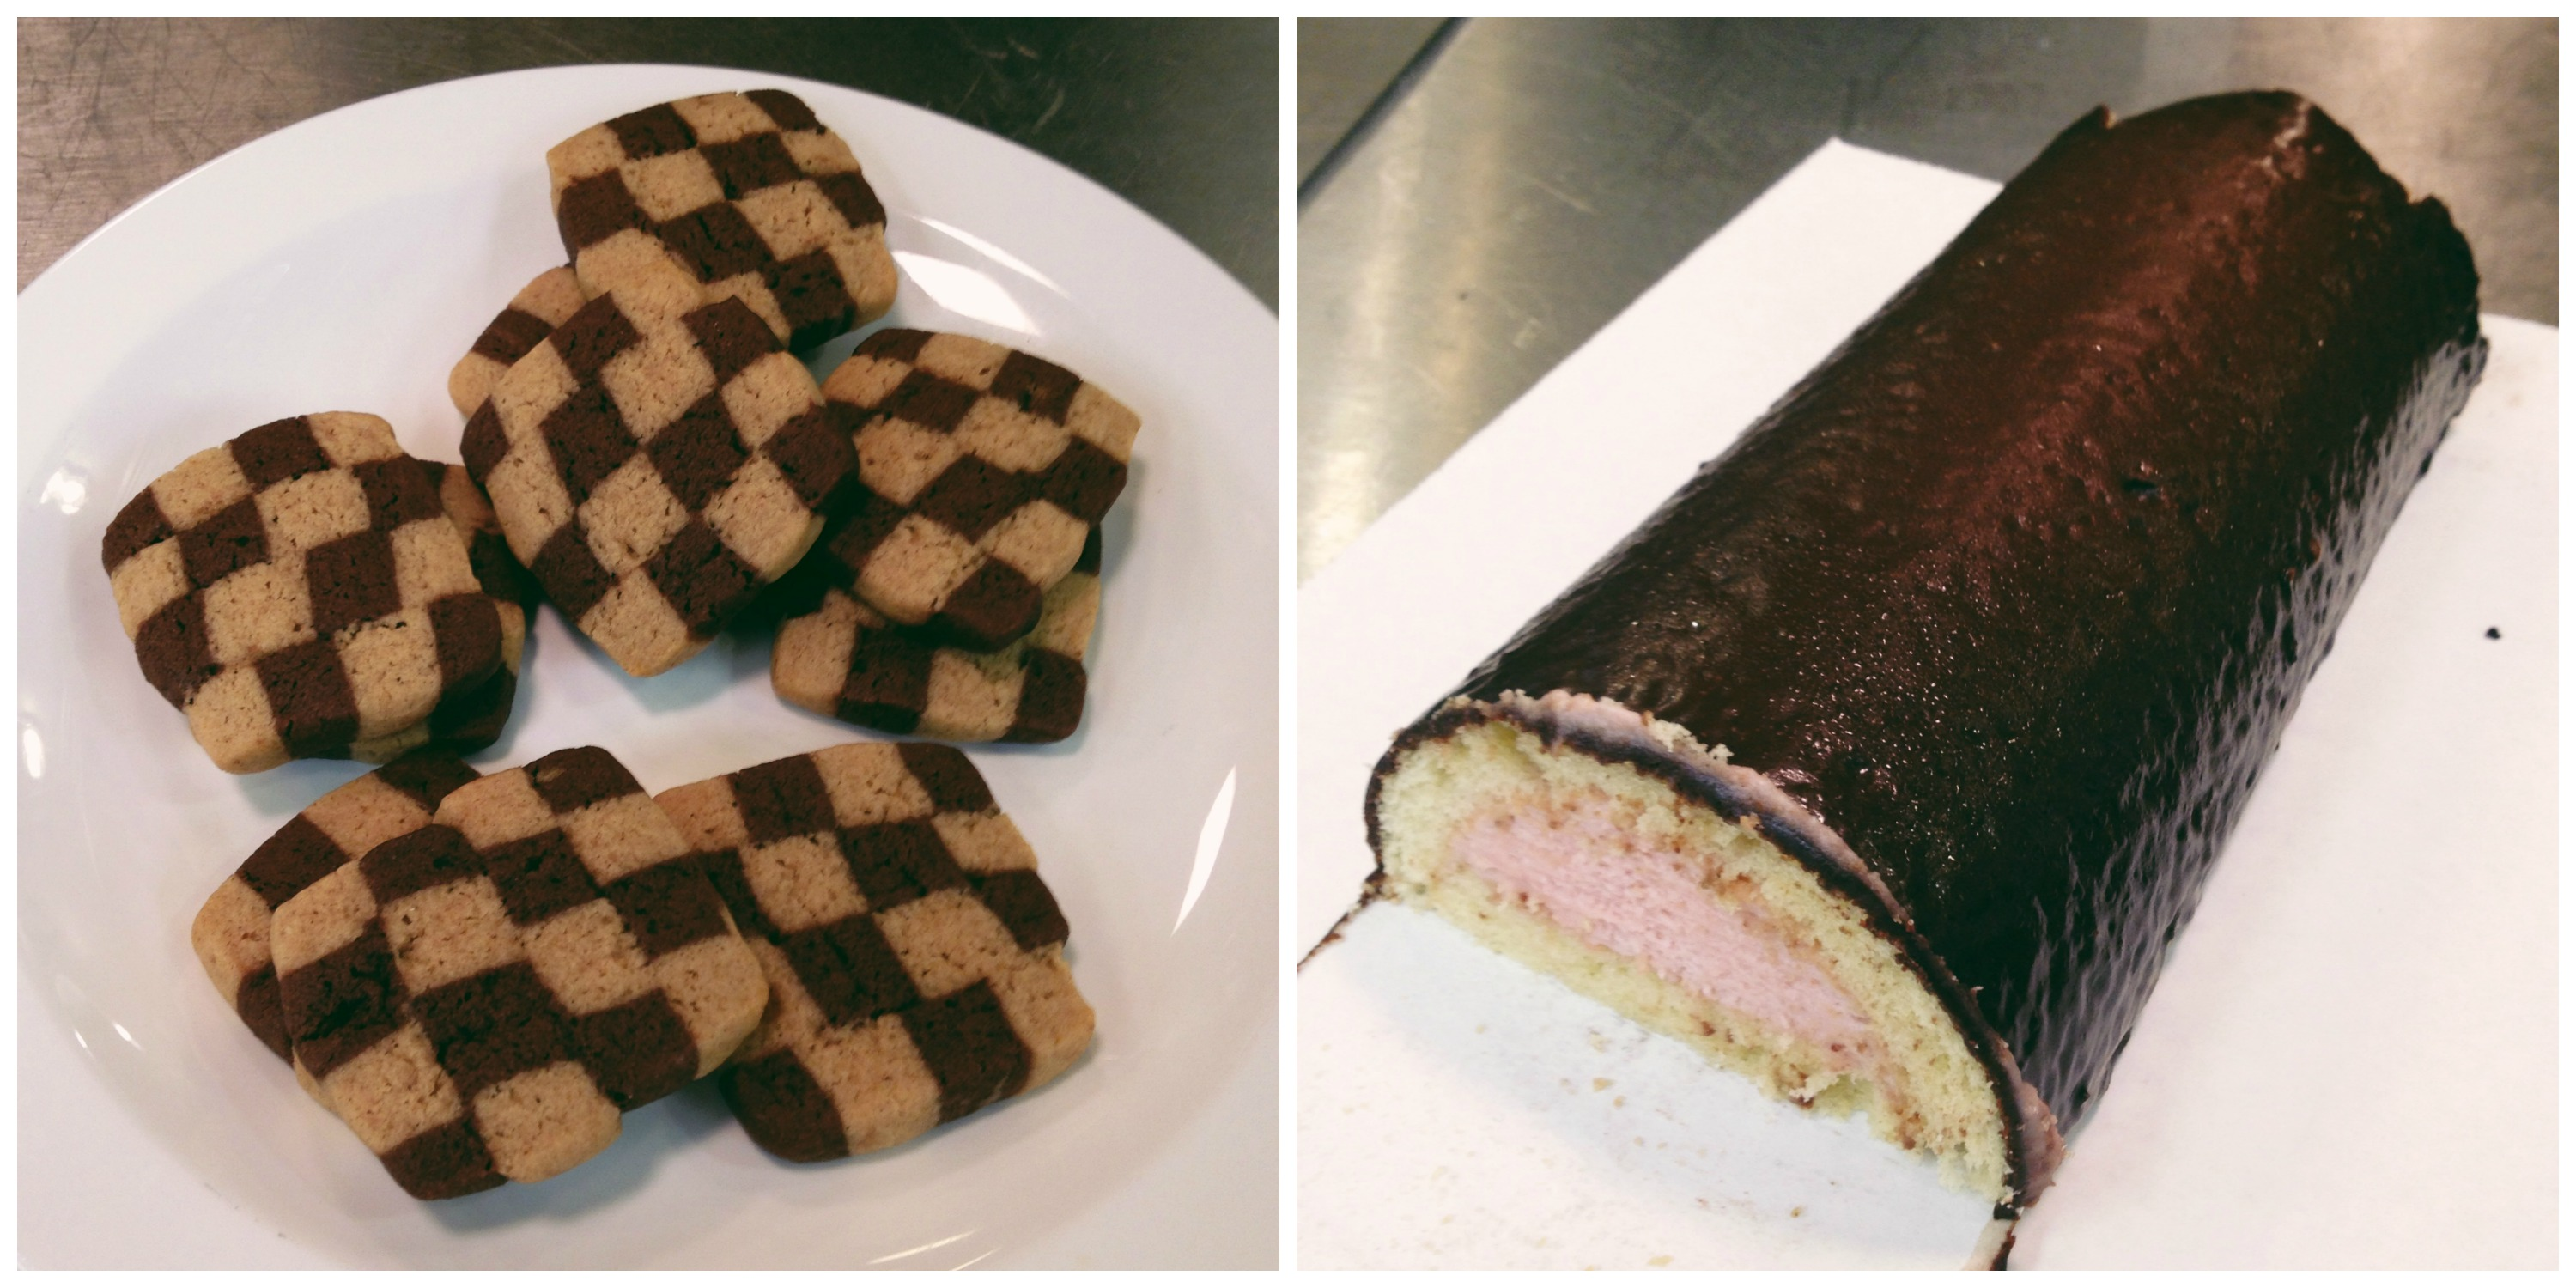 Checkerboard Cookies and a Strawberry Filled Cake